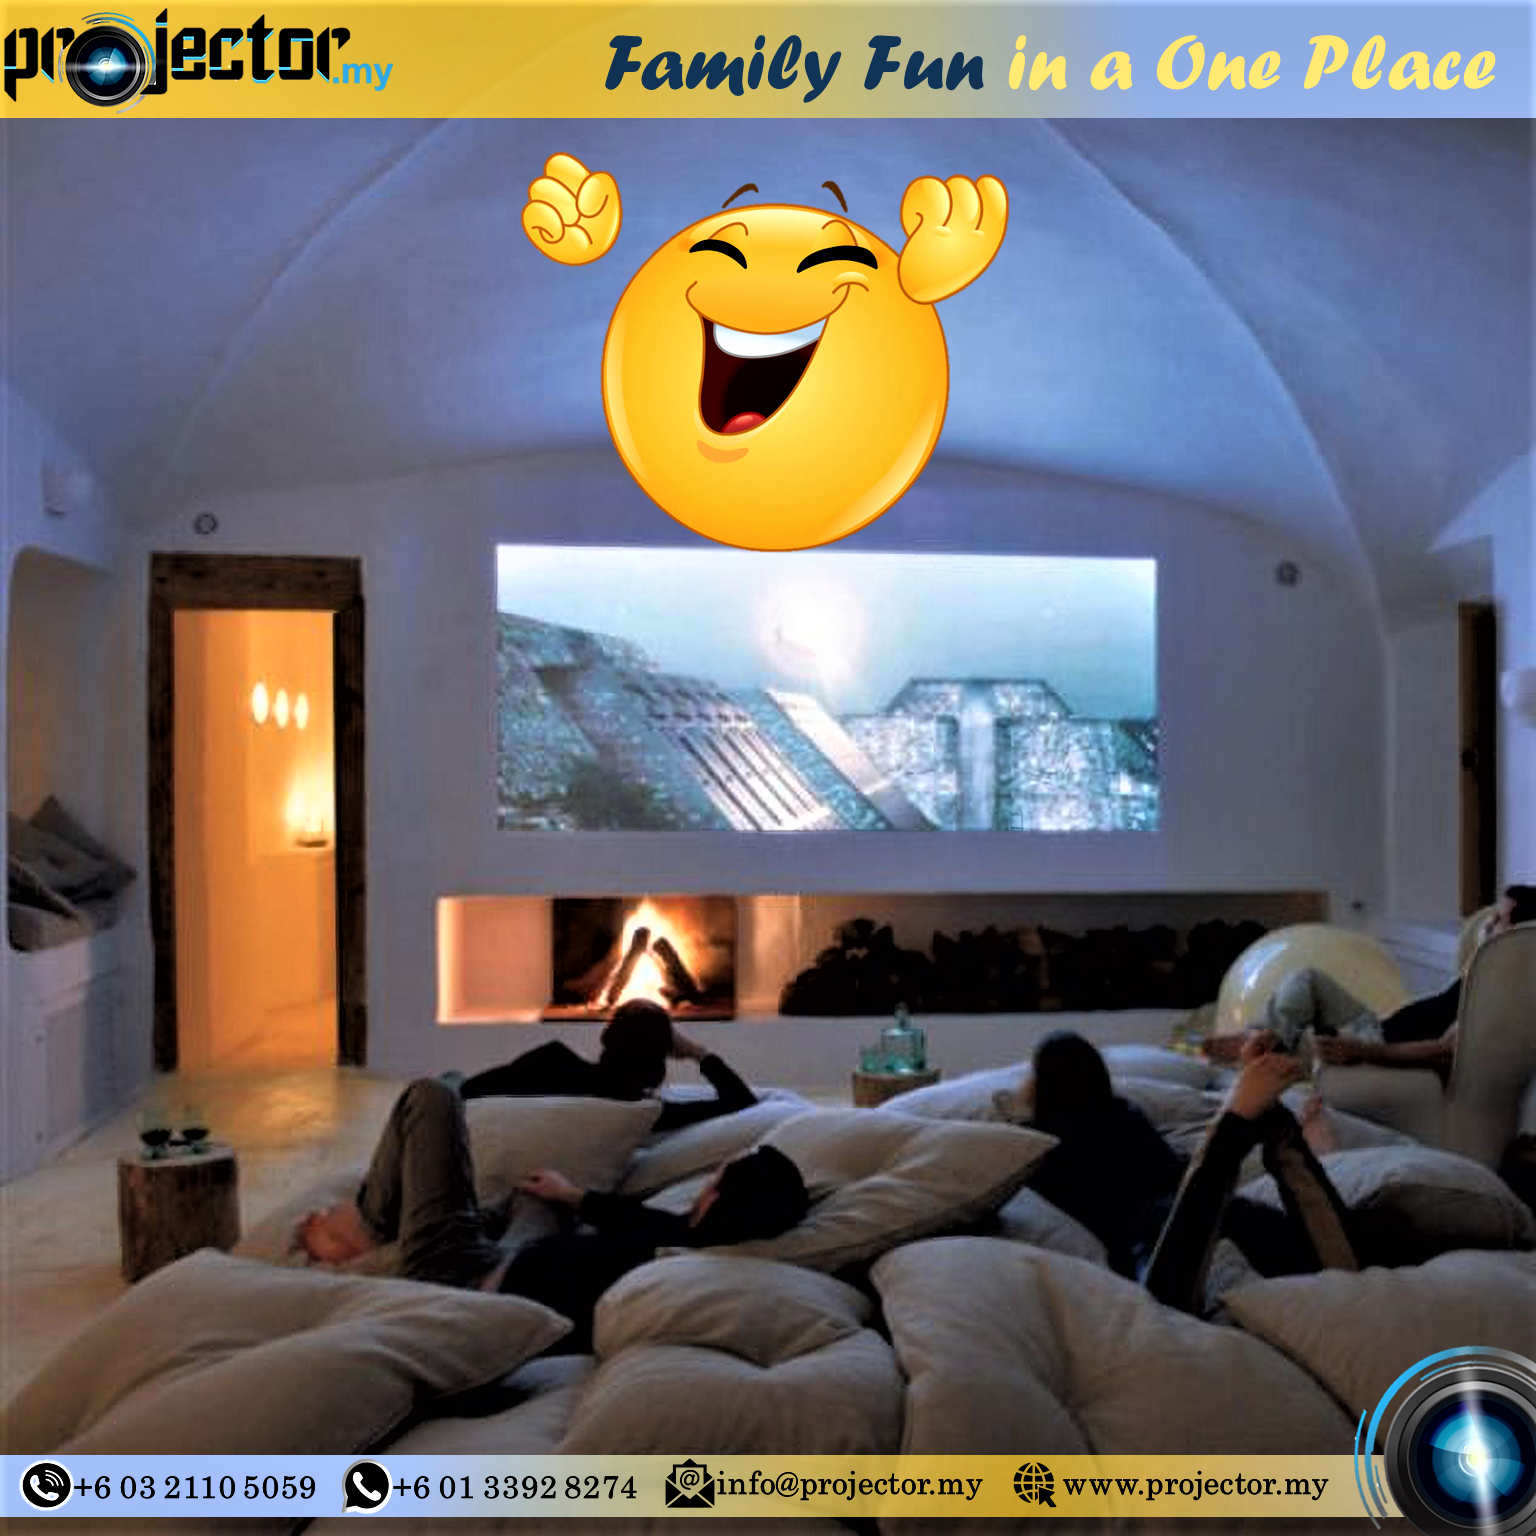 Home Cinema Projector is the Best solution for Entertainment in COVID-19 Time.